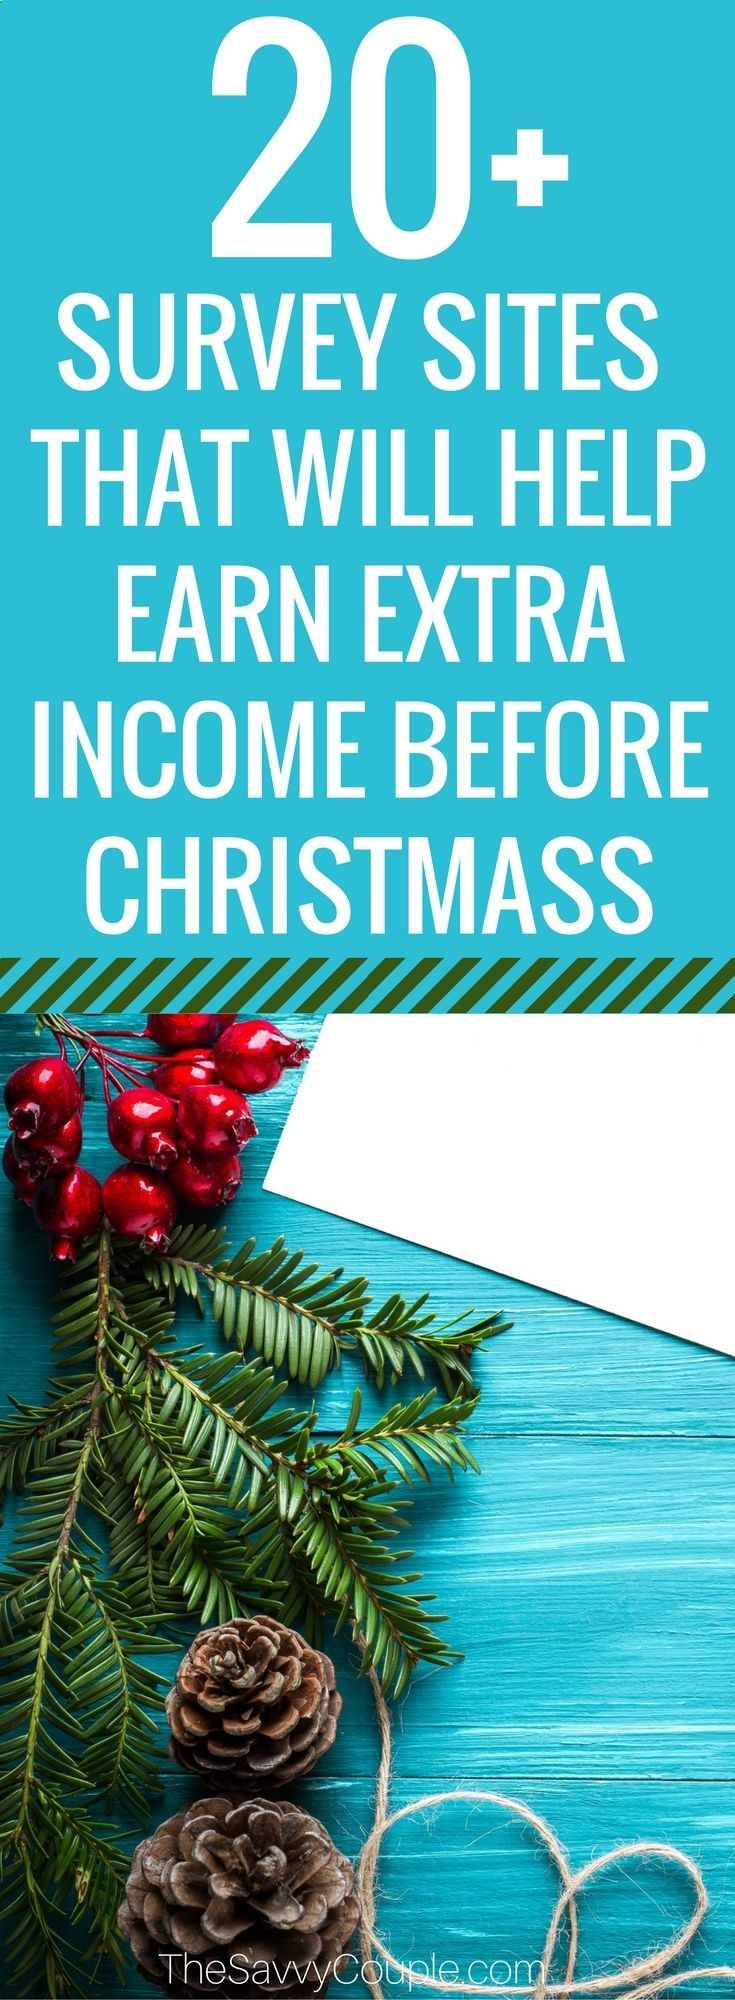 Are you a busy mom who wants to learn how to make some extra money from home? Here are 20 of the best survey companies that we have personally used and approved. We were able to save up money to pay for Christmas one year using these 20 companies! Check them out and start earning extra income today! via @TheSavvyCouple